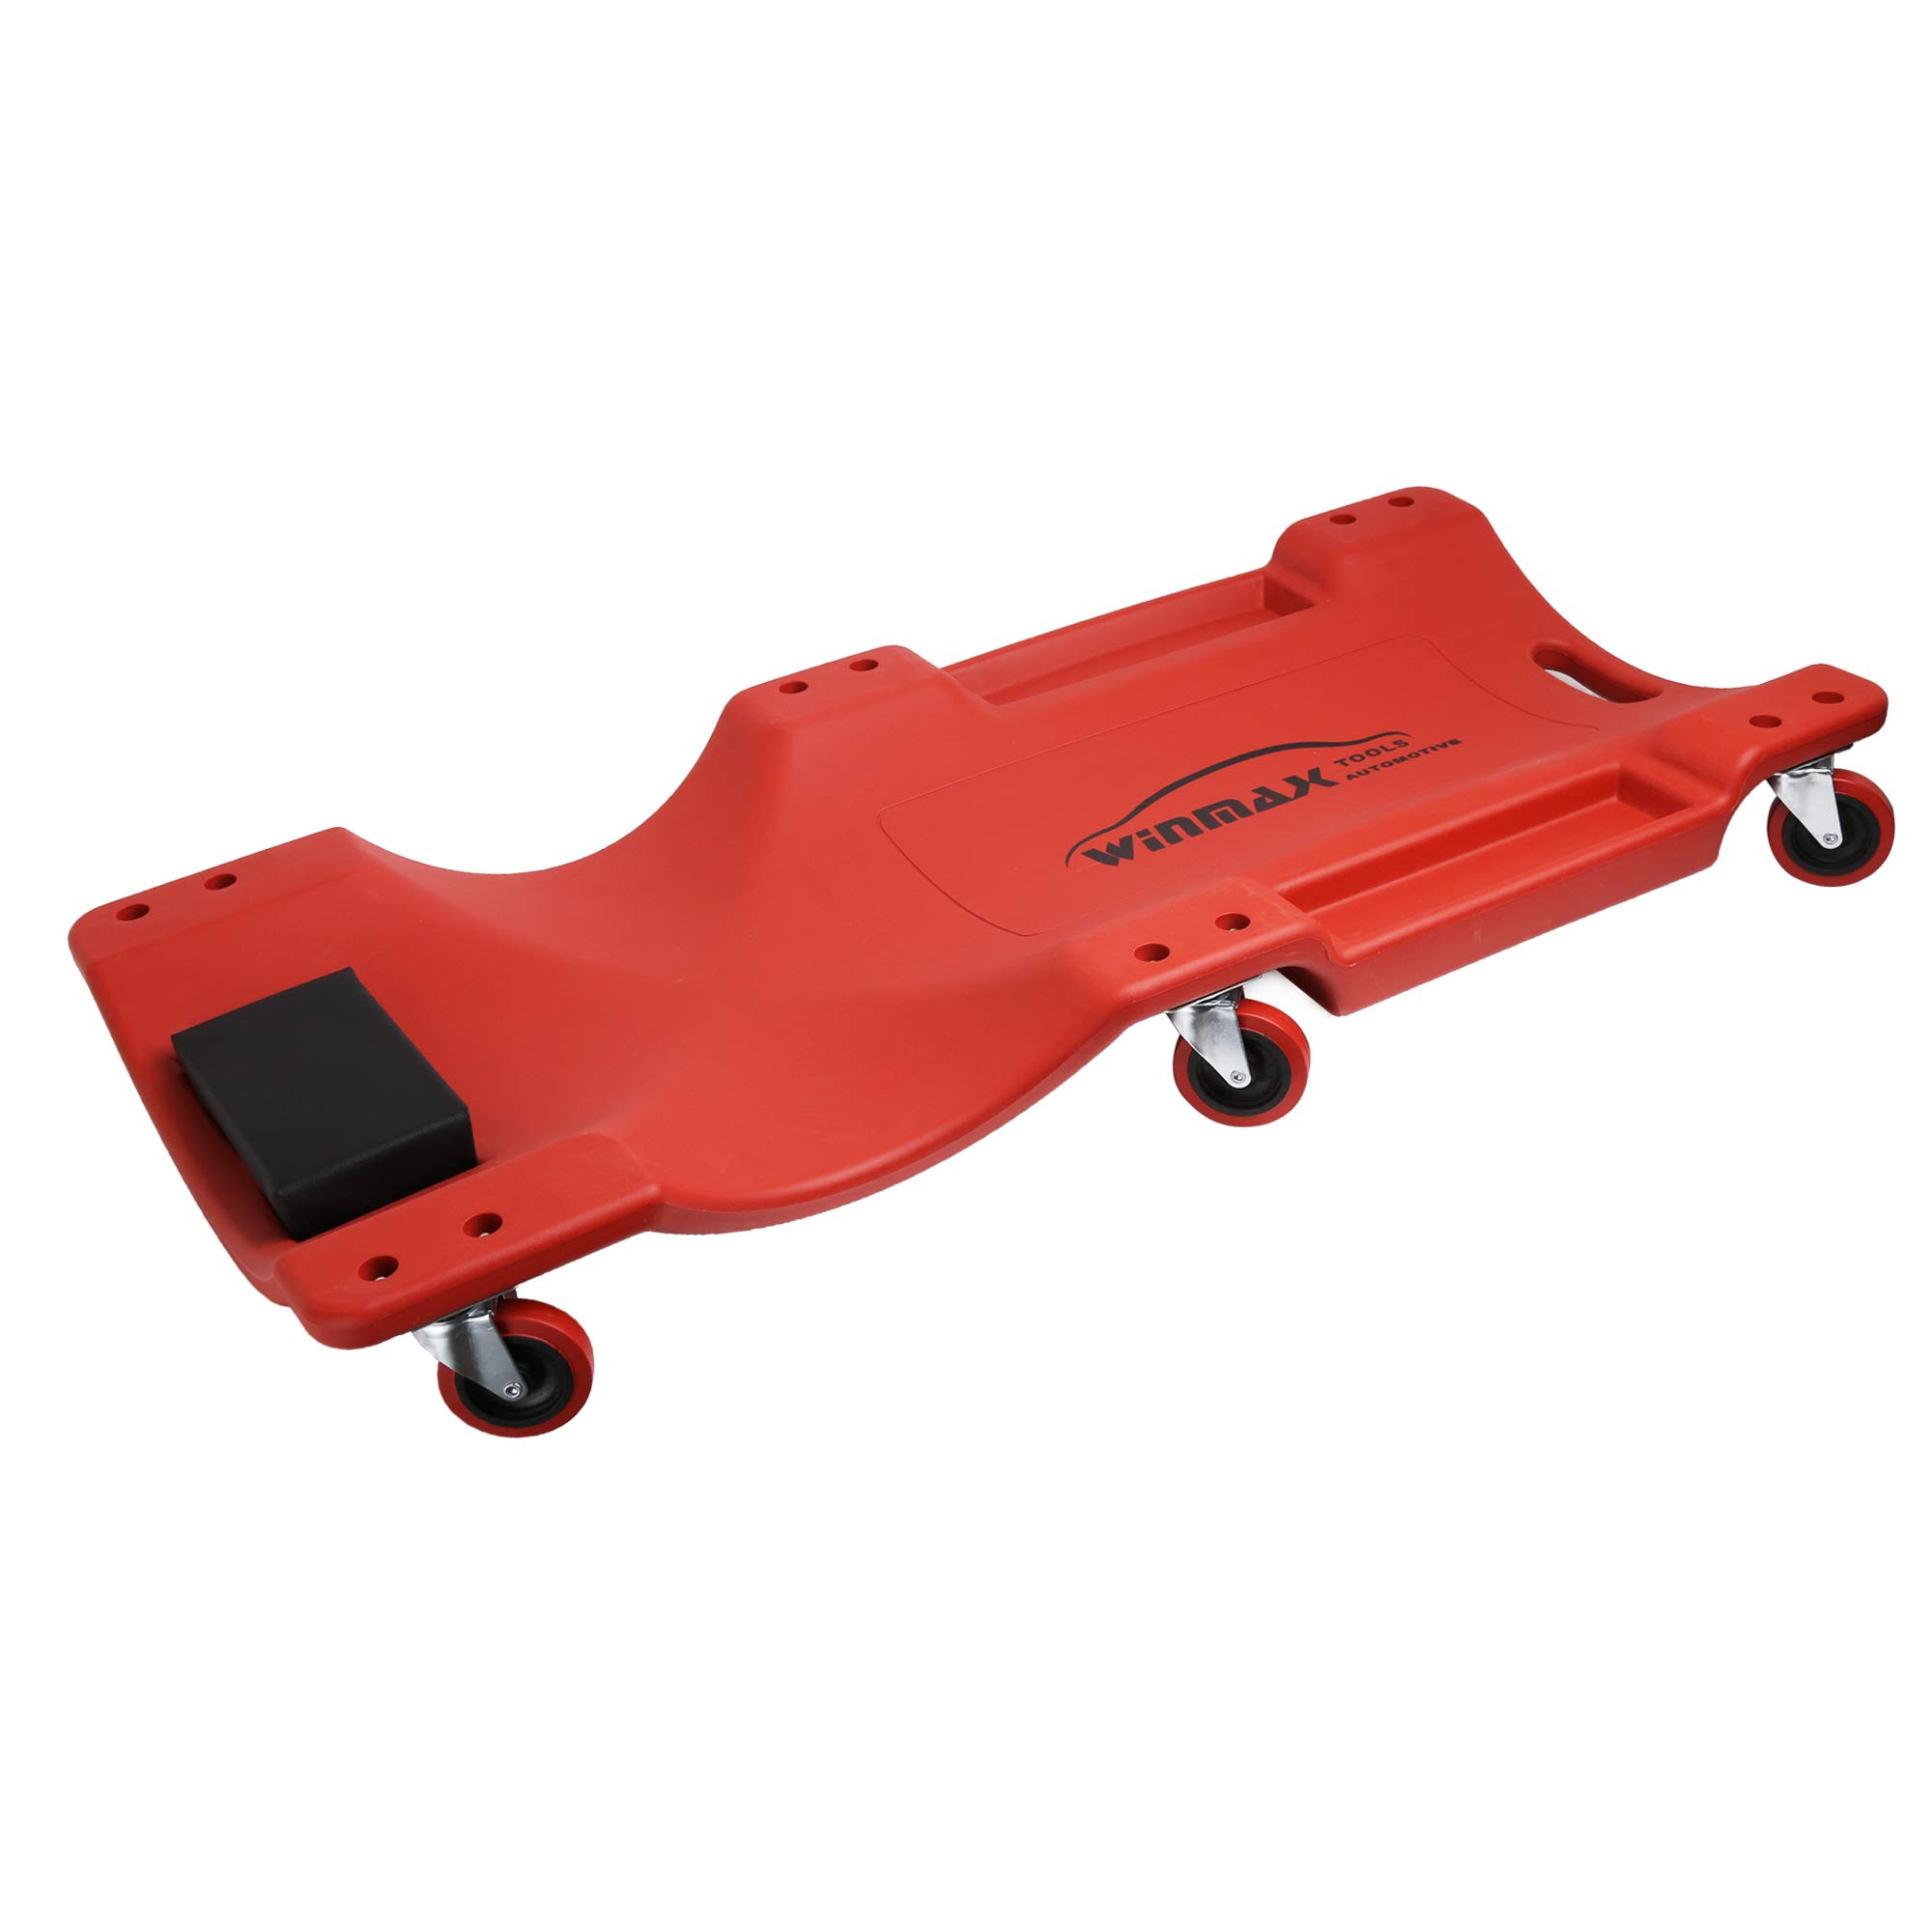 WINTOOLS Low Profile Red 40 Inch Creeper Garage Plastic Rolling Car Repair Mechanic Cart by WINTOOLS